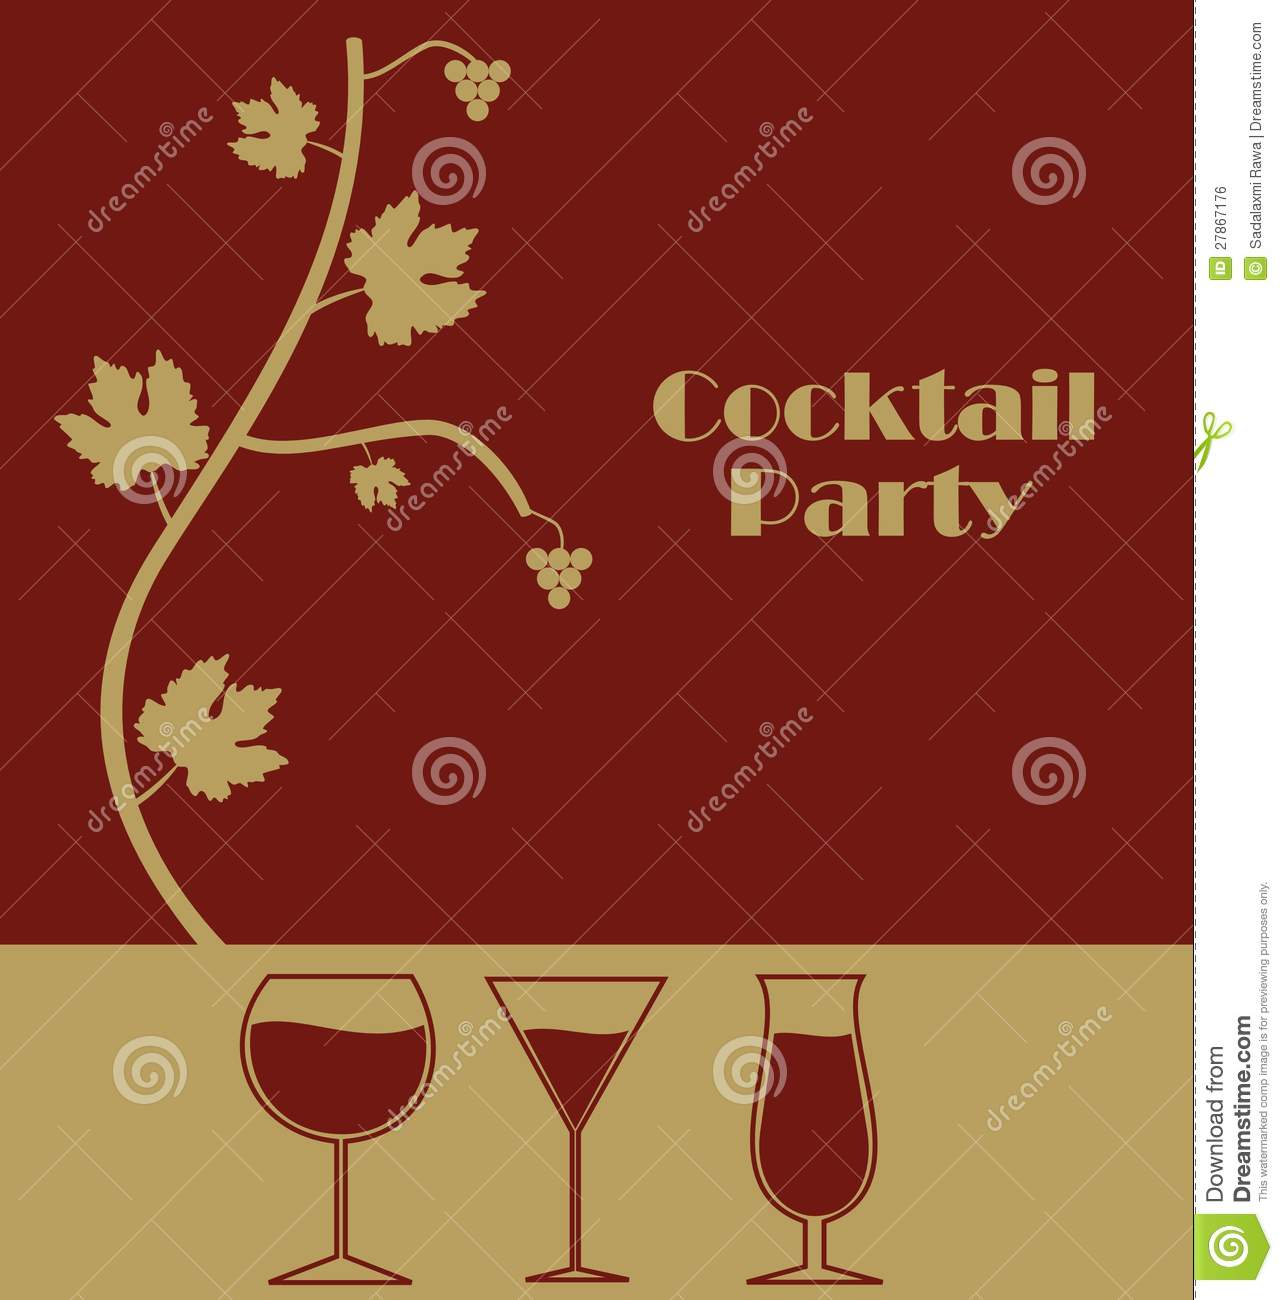 cocktail party stock vector image of holiday alcoholic 27867176. Black Bedroom Furniture Sets. Home Design Ideas